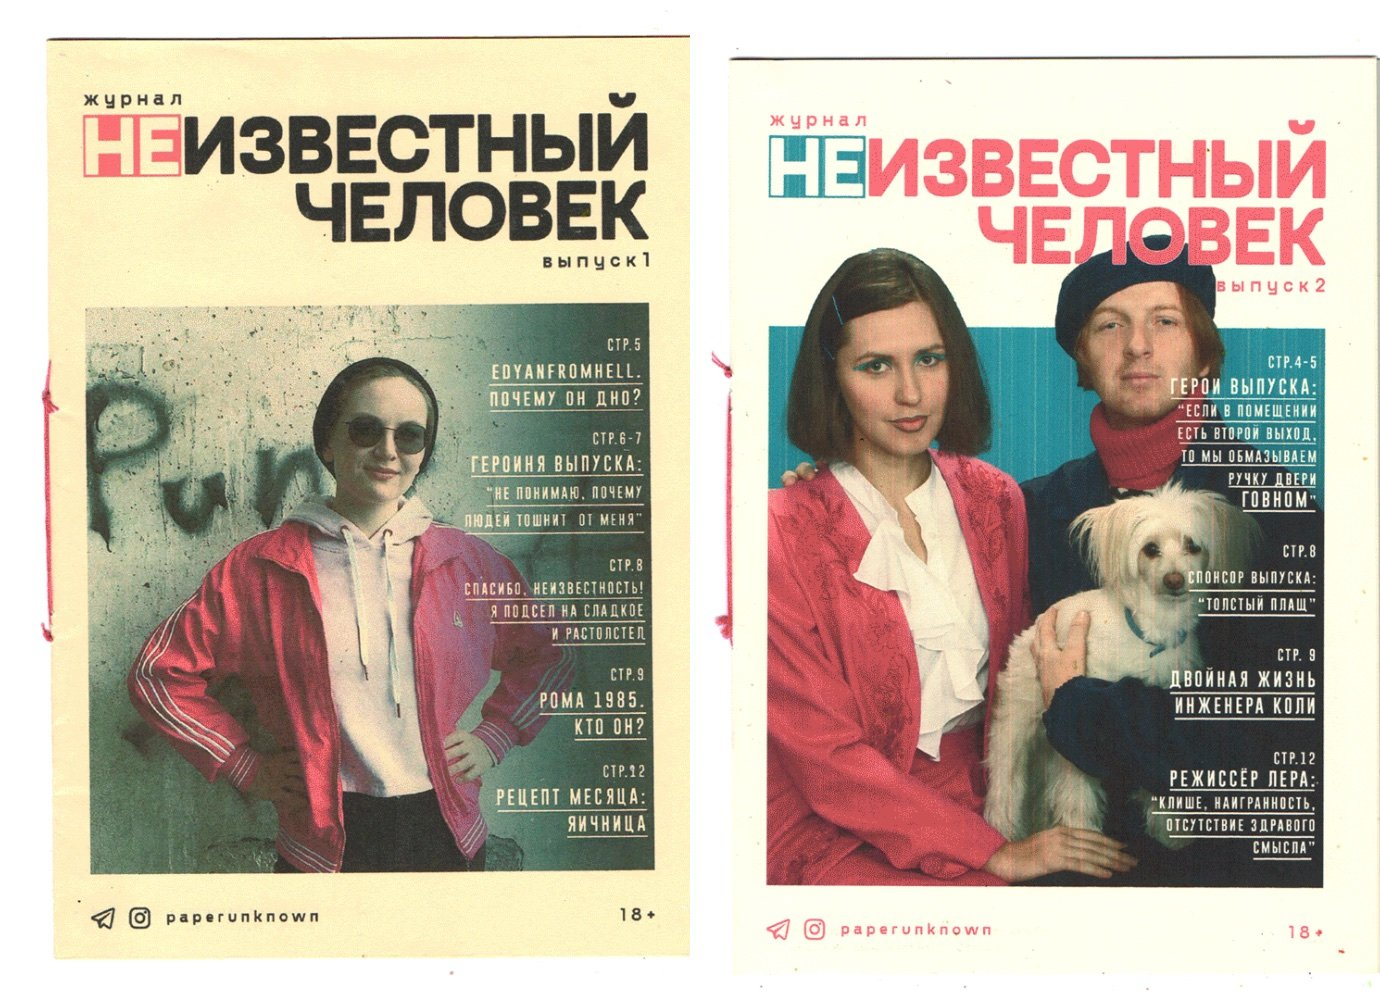 This zine gives Russia's unsung artists the A-List attention they deserve